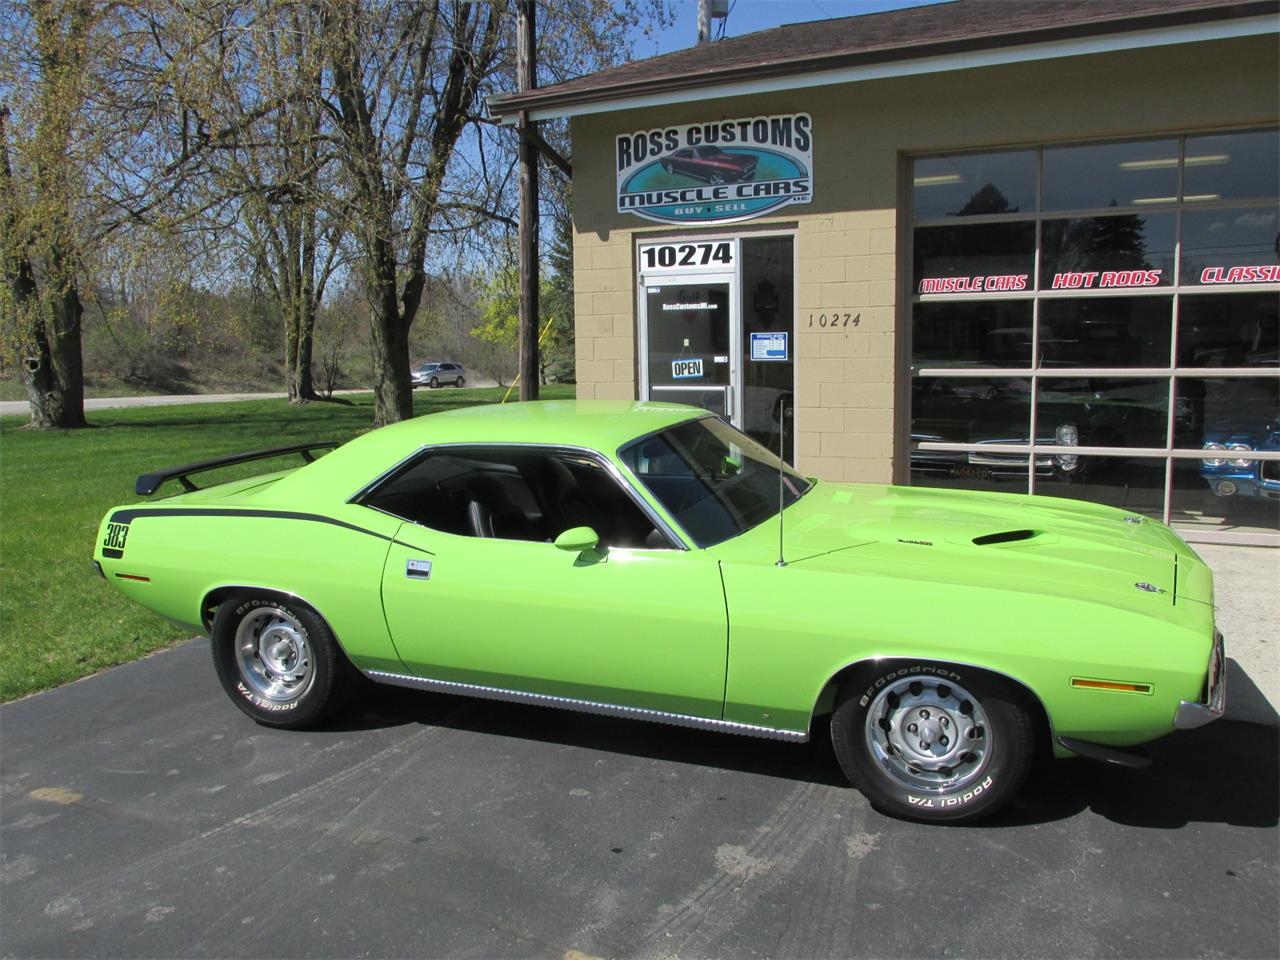 Large Picture of Classic '70 Plymouth Cuda located in Goodrich Michigan - $43,900.00 - Q105